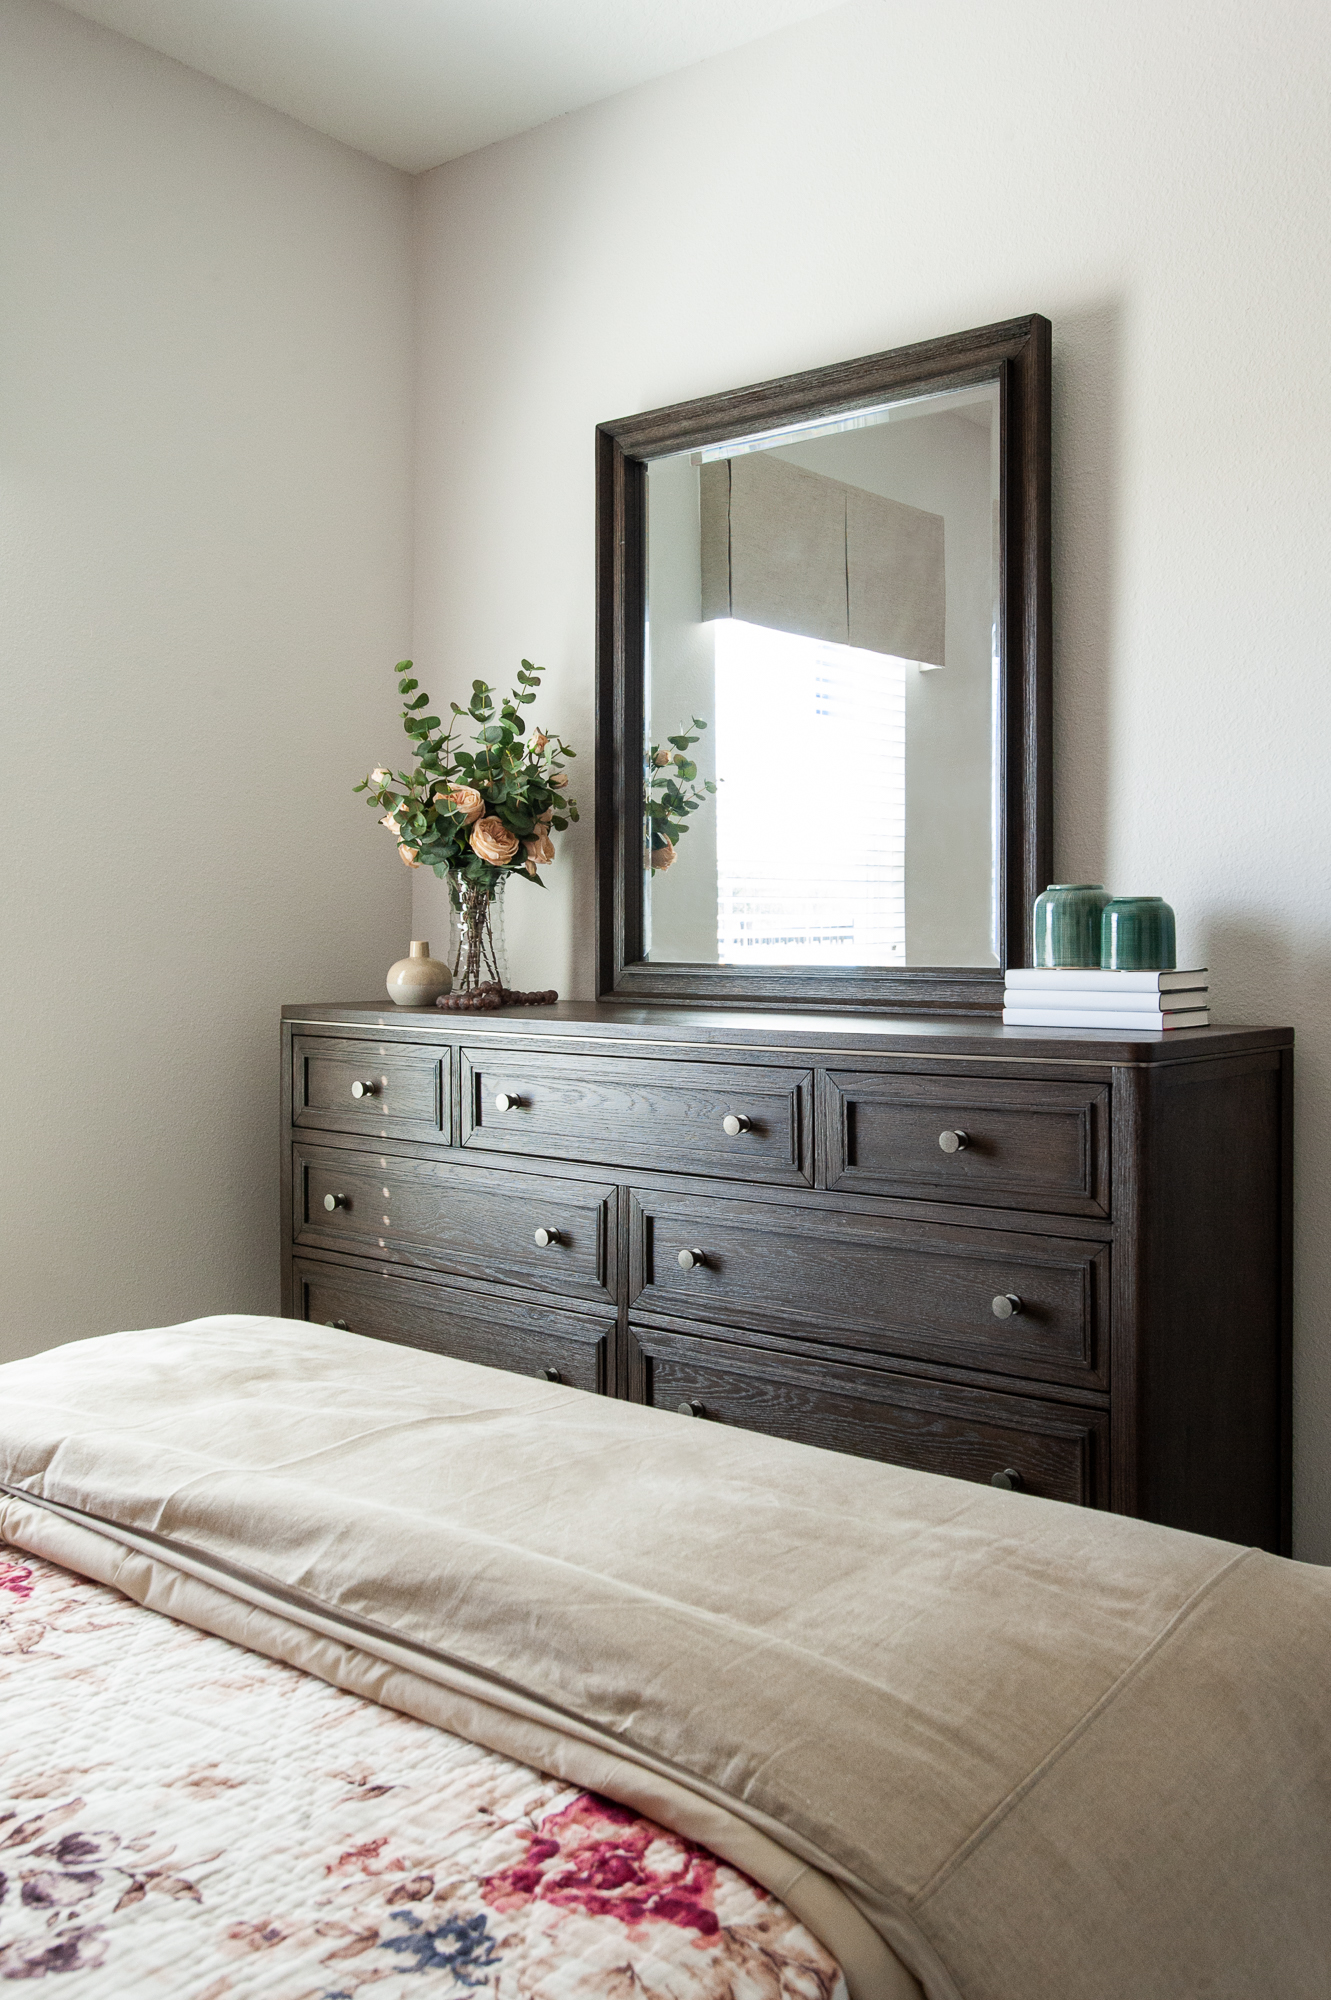 Micamy_Interior Designer_Design_Interior_Model_Merchandising_Guest Bedroom_Accent Wall_Uttemrost_UniversalFurniture_Schumacher_AmityBedding_Dresser_Blog.jpg